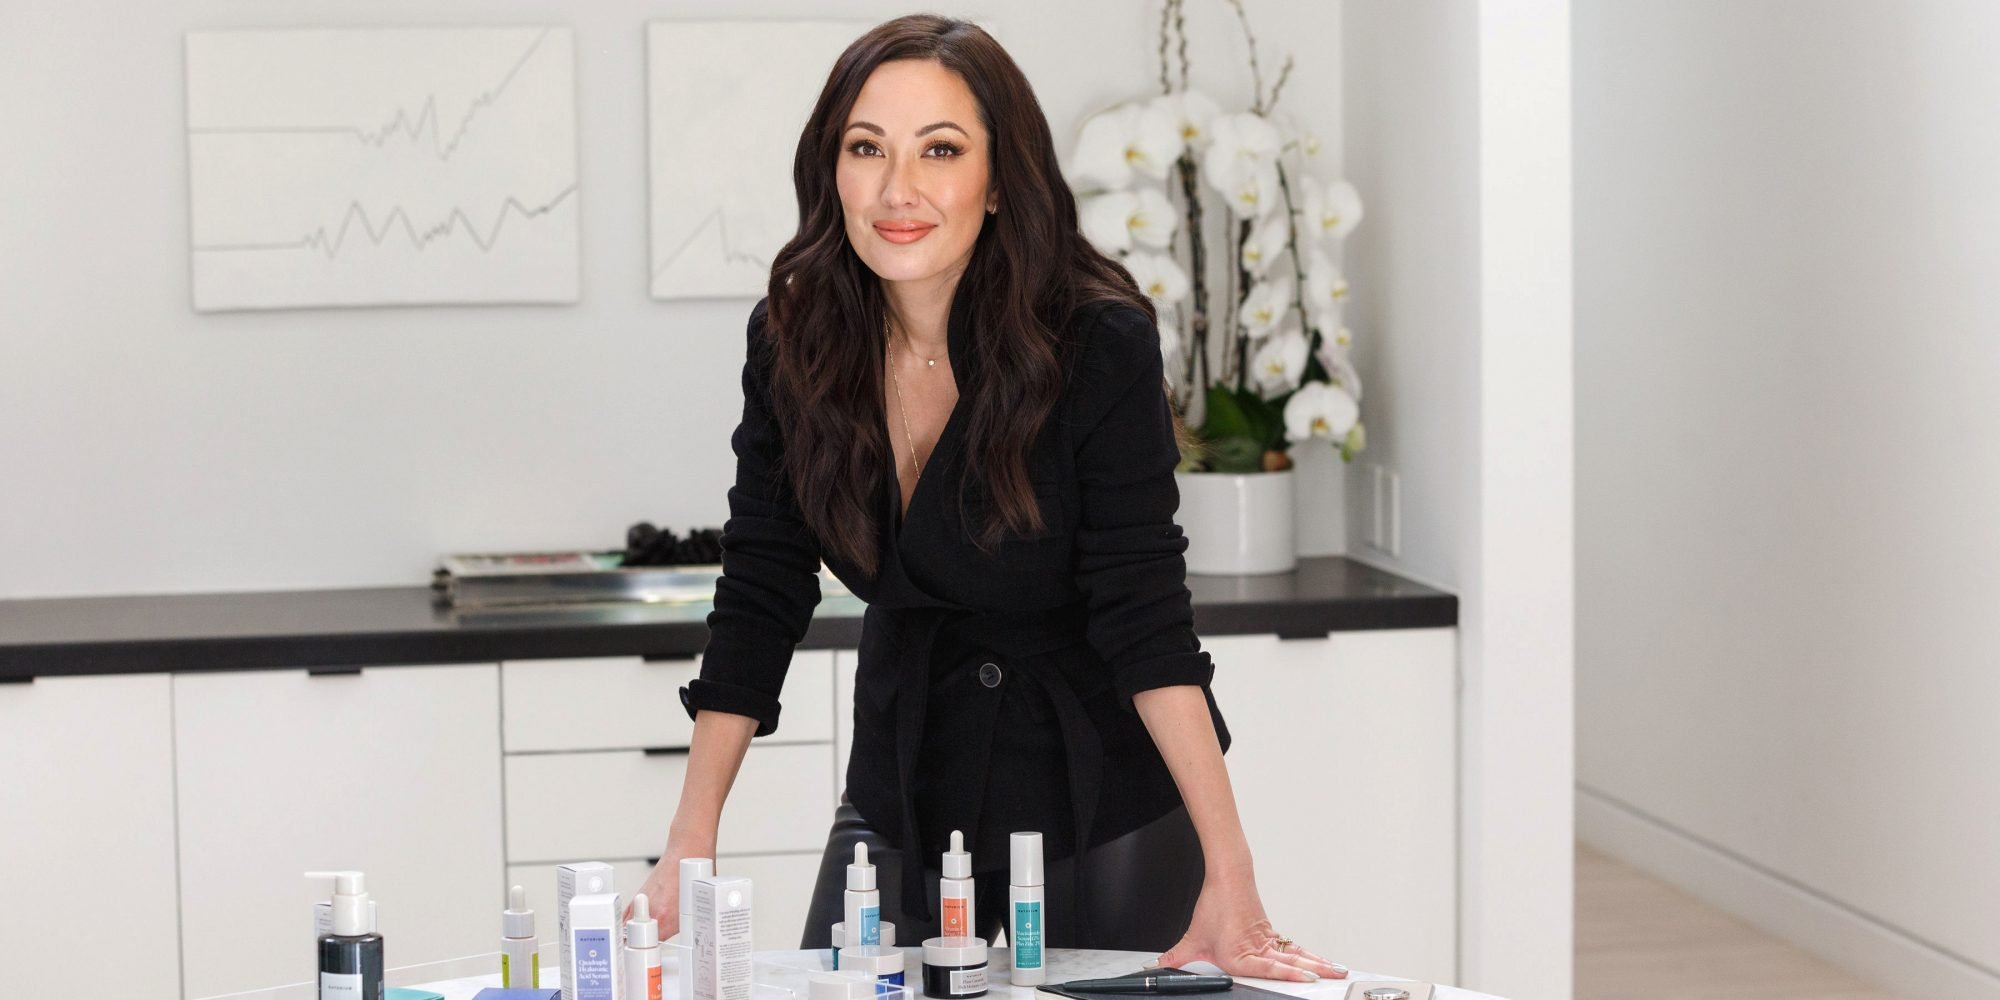 Mixed Makeup's Susan Yara Reveals She's Behind Naturium, A Skincare Brand Created To Thrive With Or Without Her